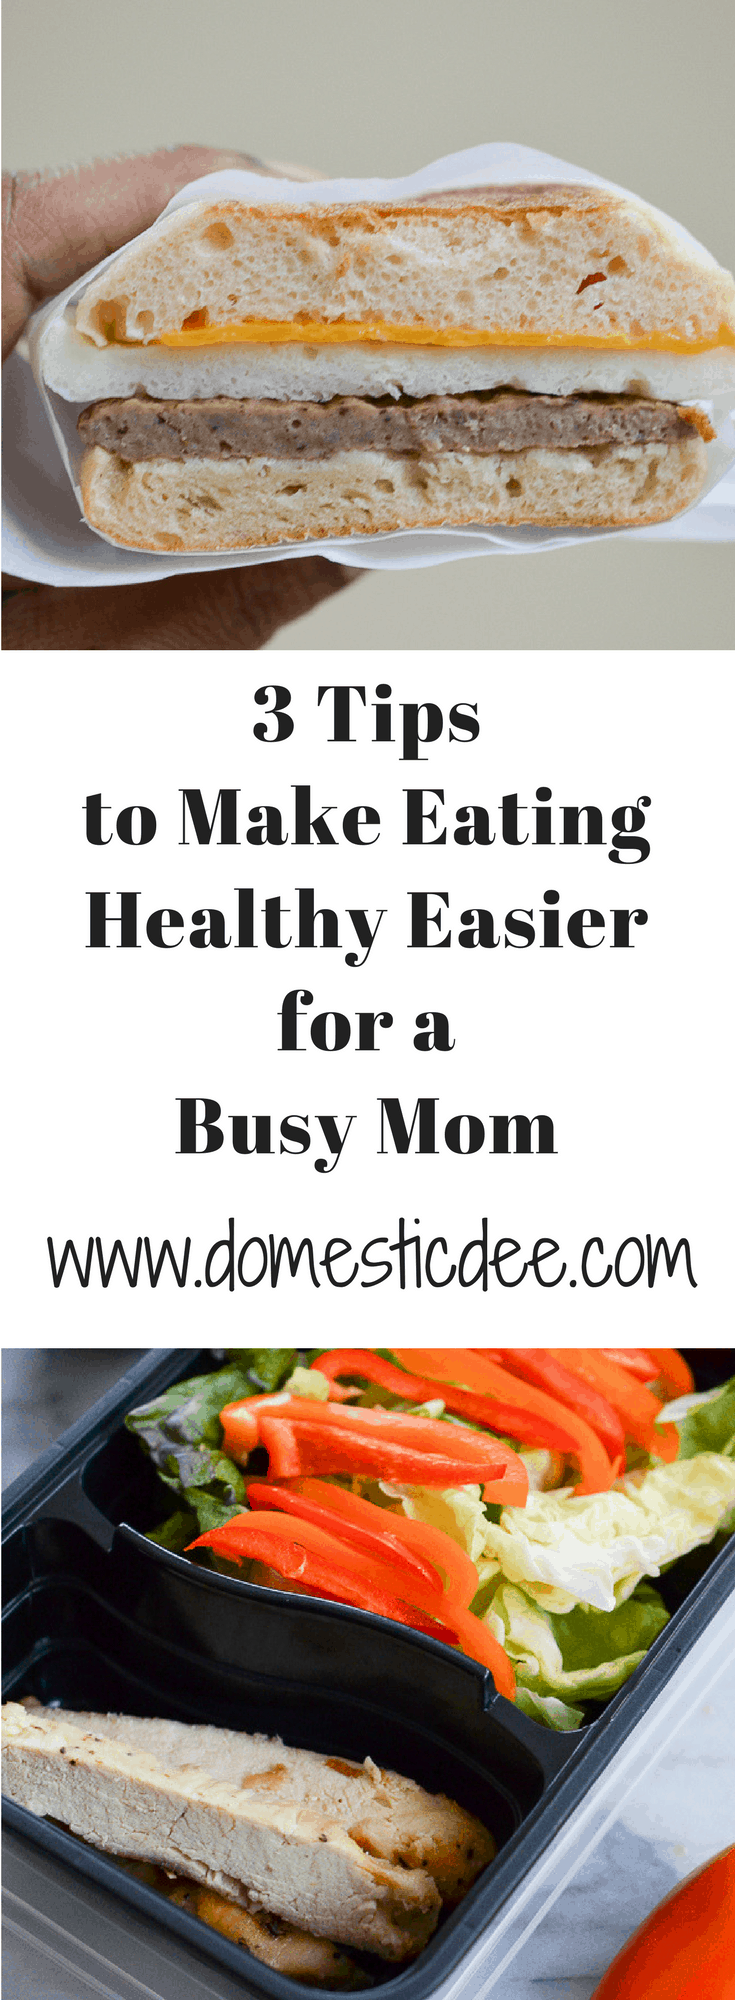 3 Tips to Make Eating Healthy Easier for a Busy Mom #busymom #betterforyou